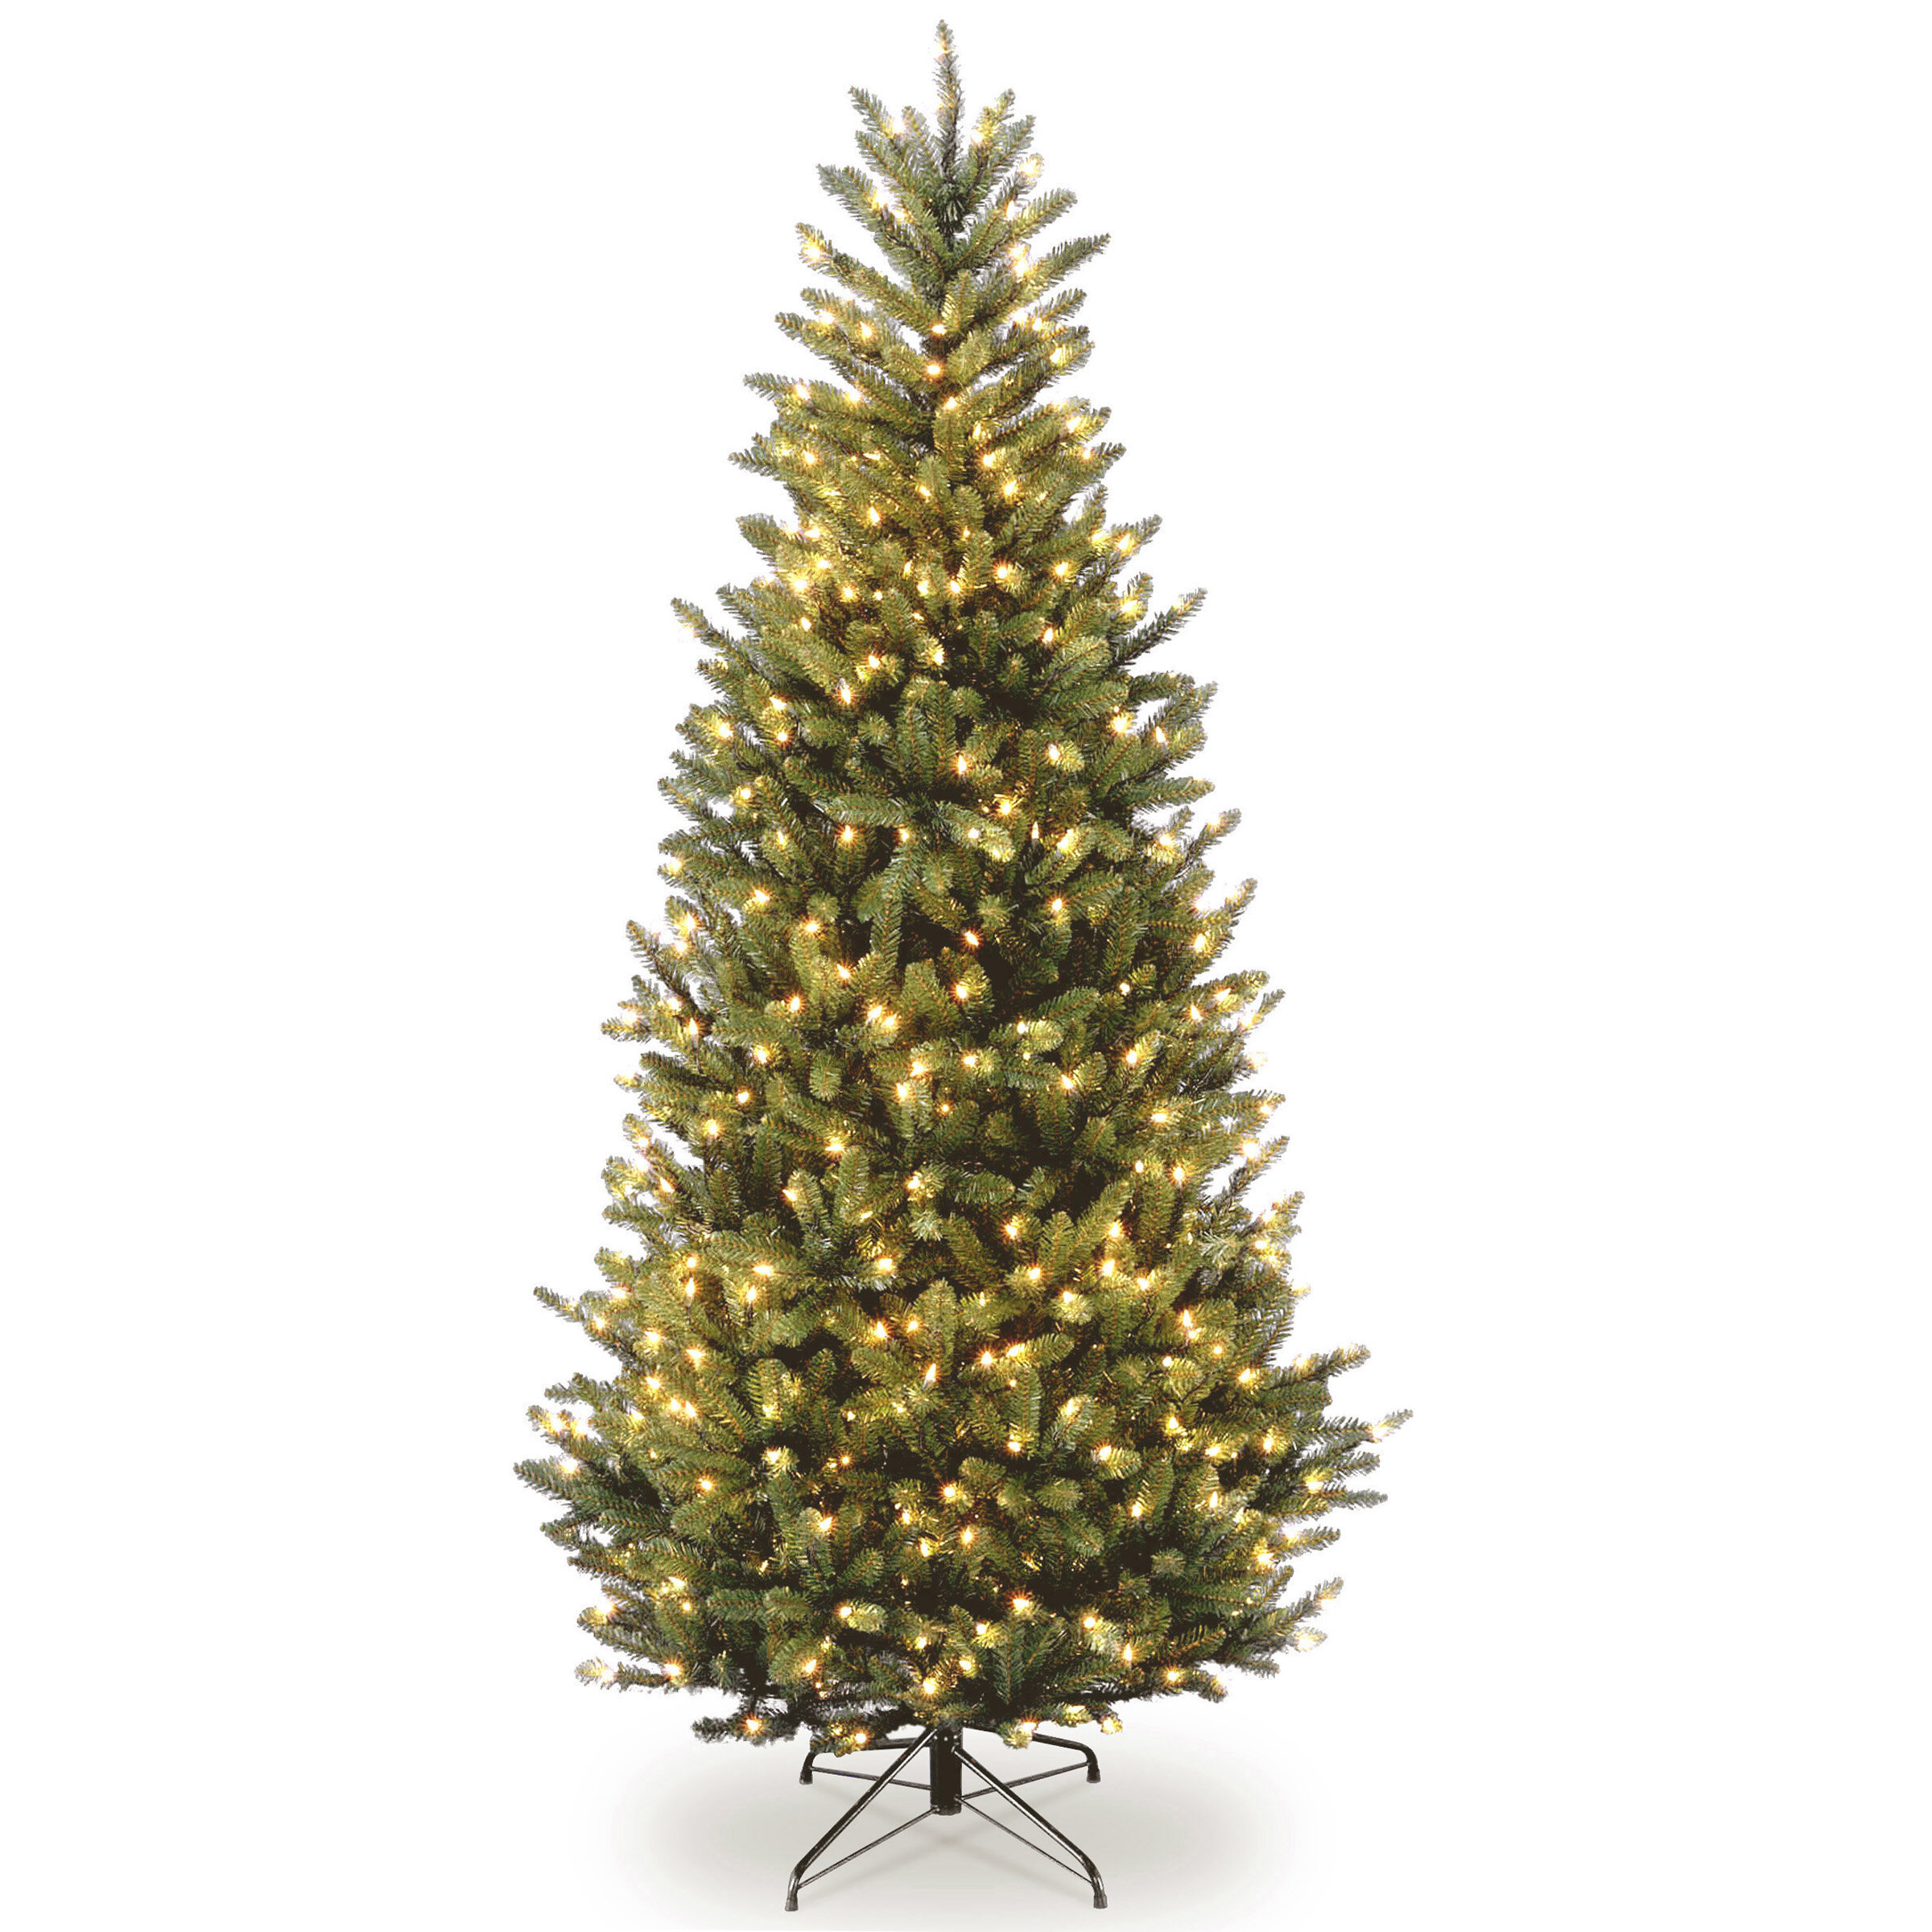 The Holiday Aisle Natural Fraser Slim Green Fir Trees Artificial